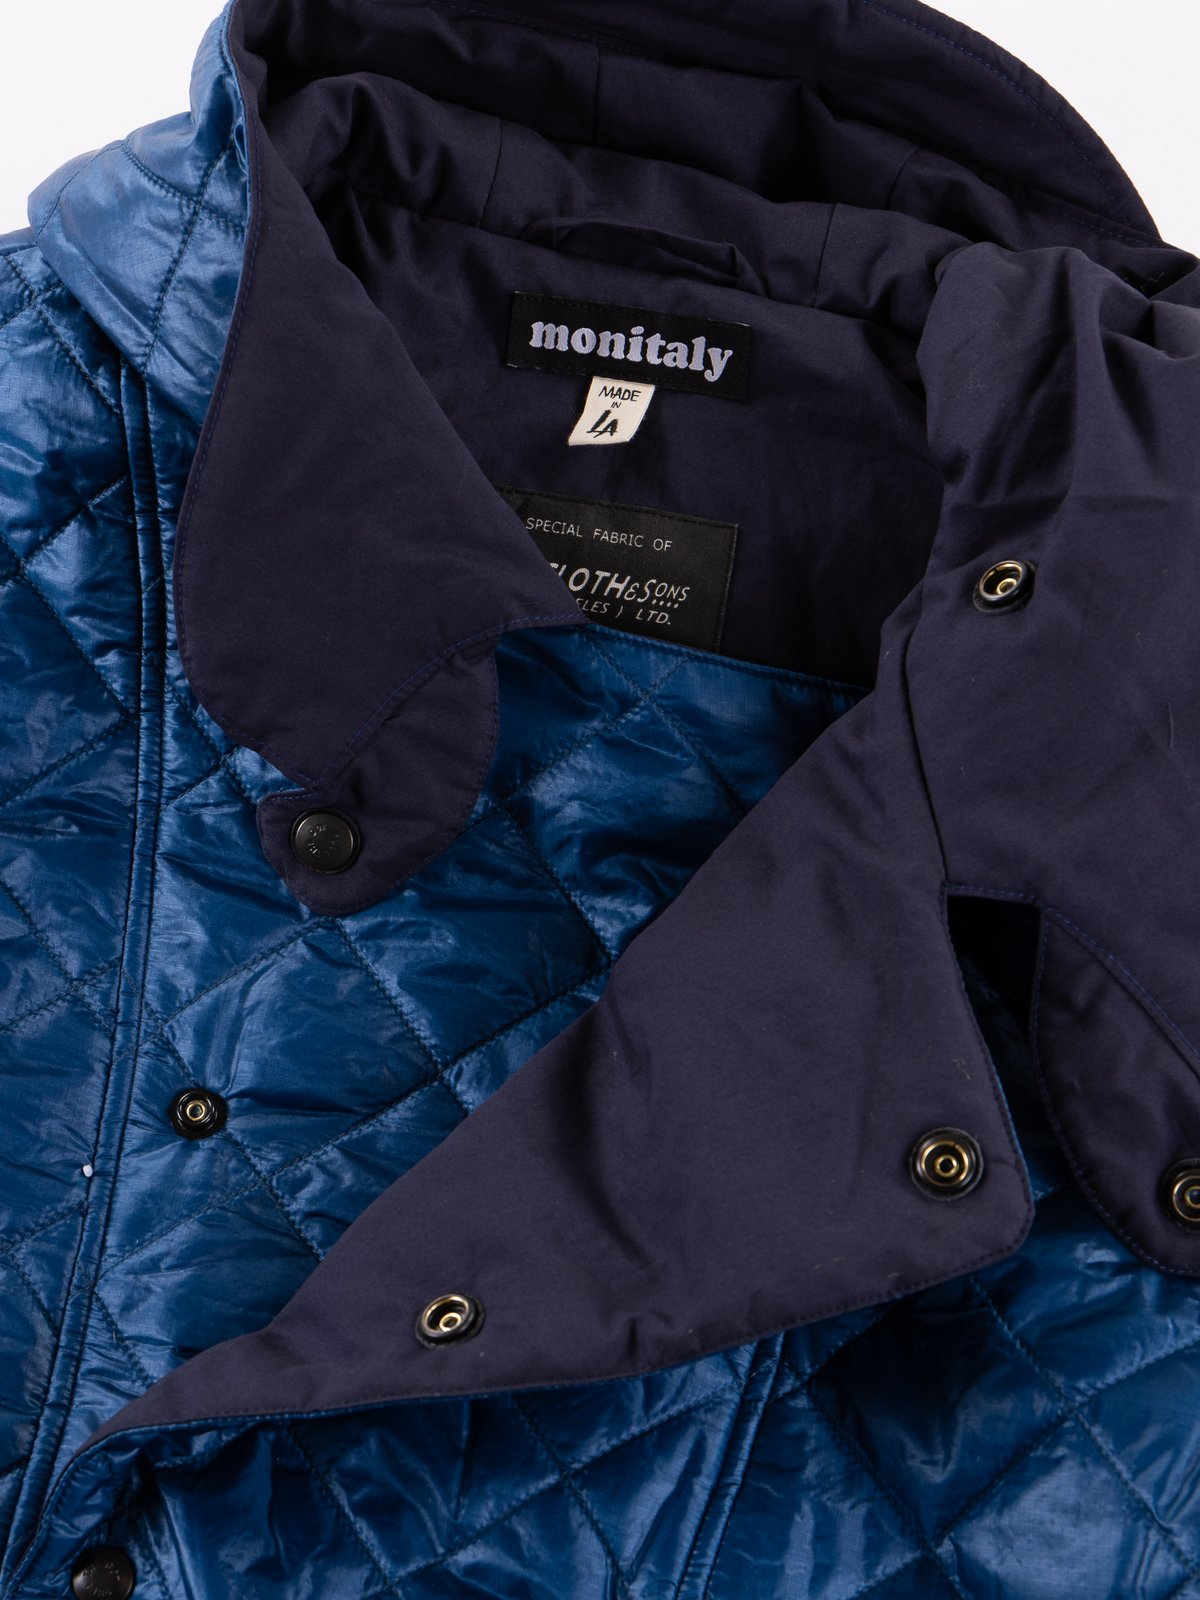 Navy 3oz Zigzag Dotera Fill Hooded Quilted Jacket - Image 5